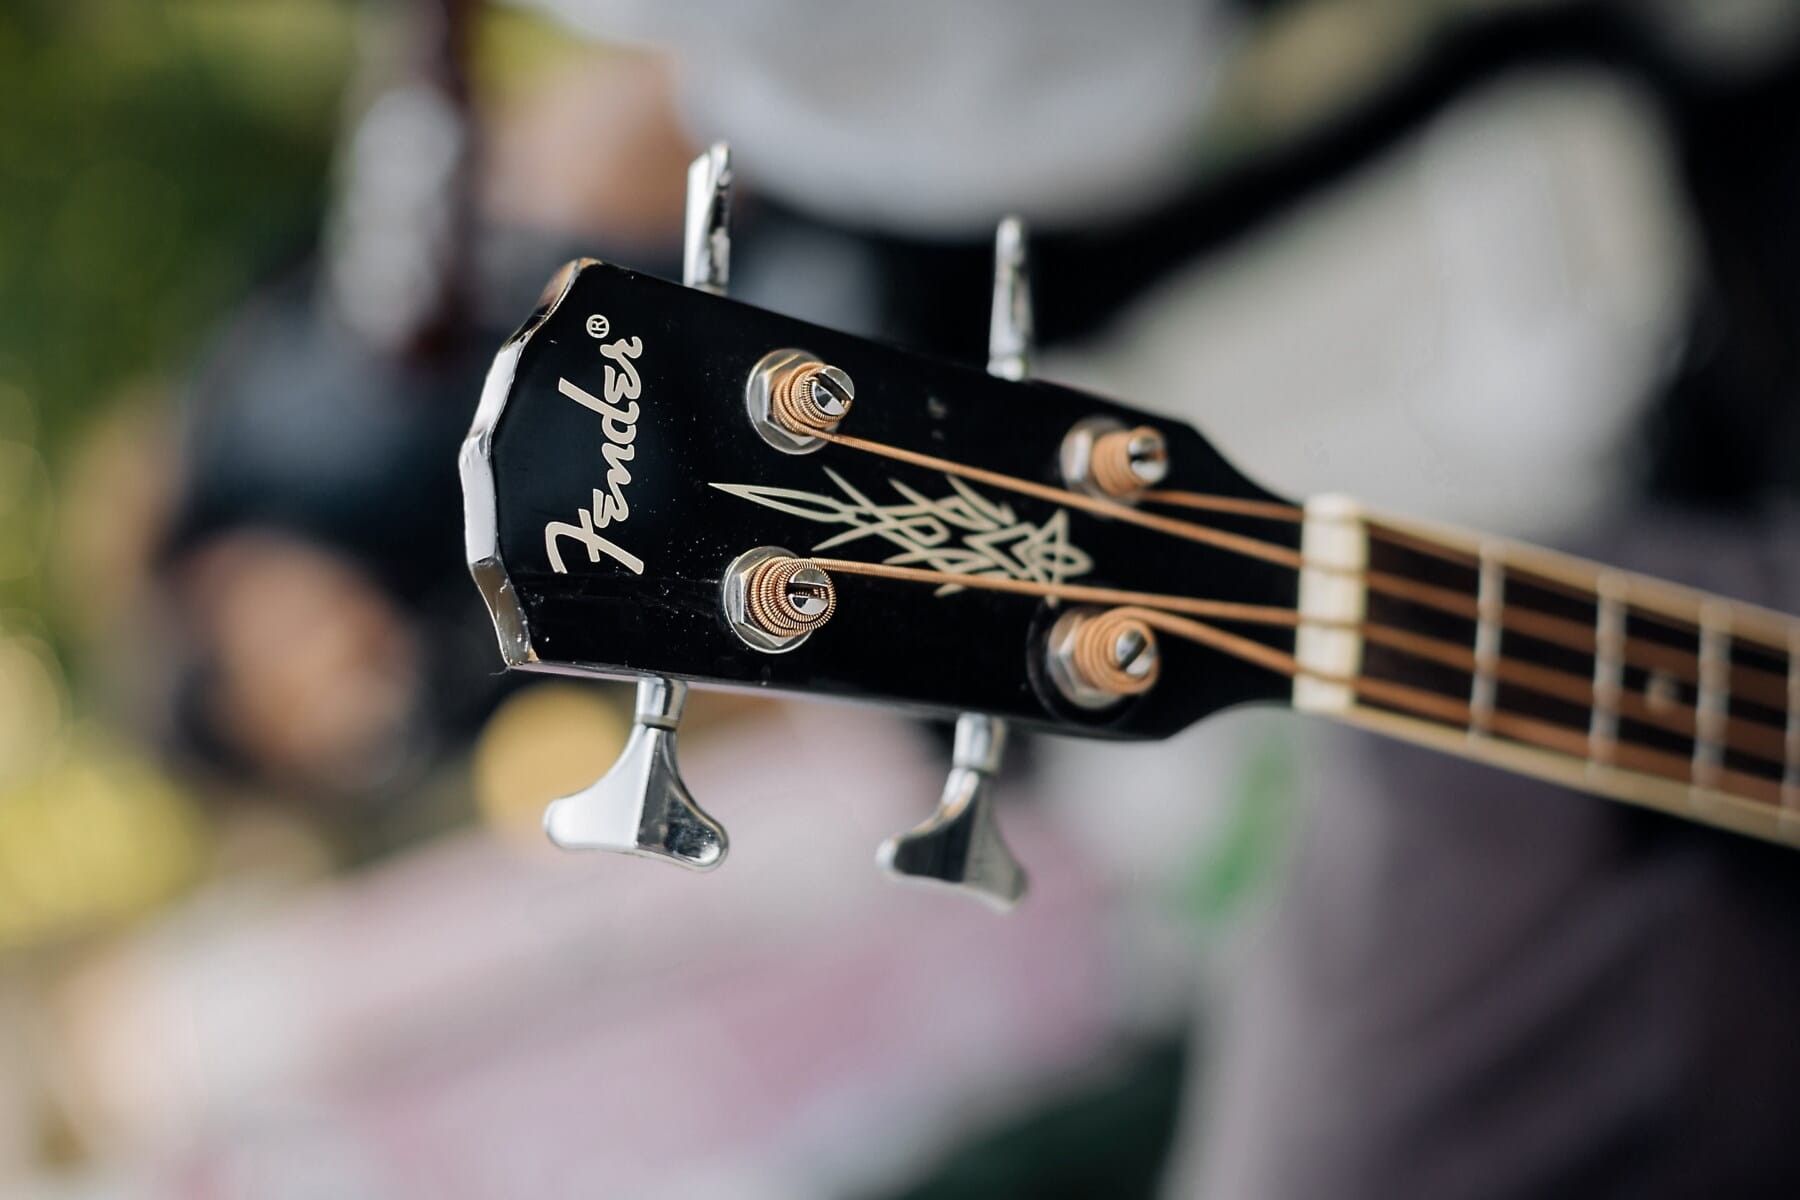 guitar, acoustic, famous, luxury, close-up, sting, wires, music, band, instrument